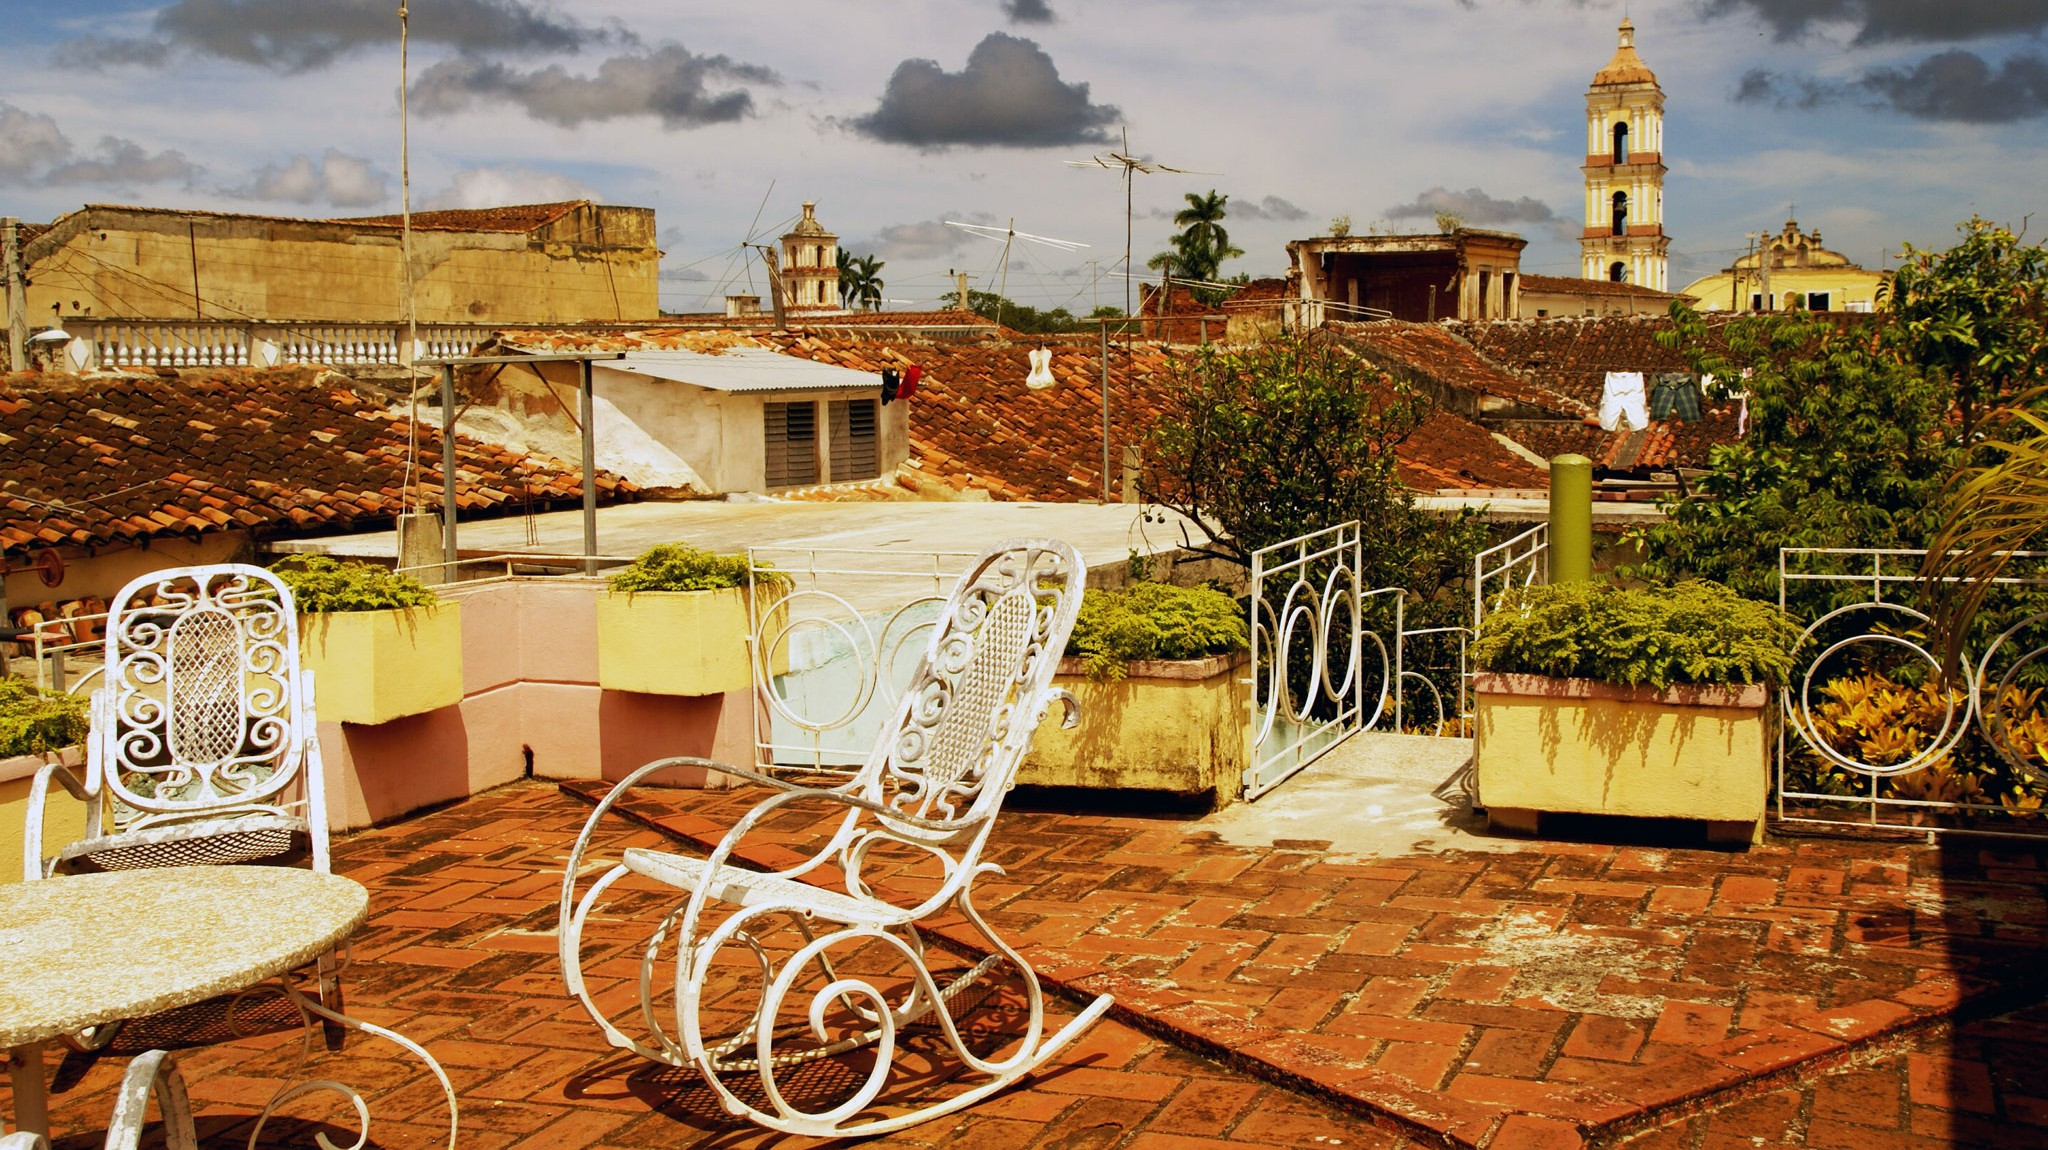 A casa particular's  rooftop in Remedios. Photo by Ovidiu Balaj